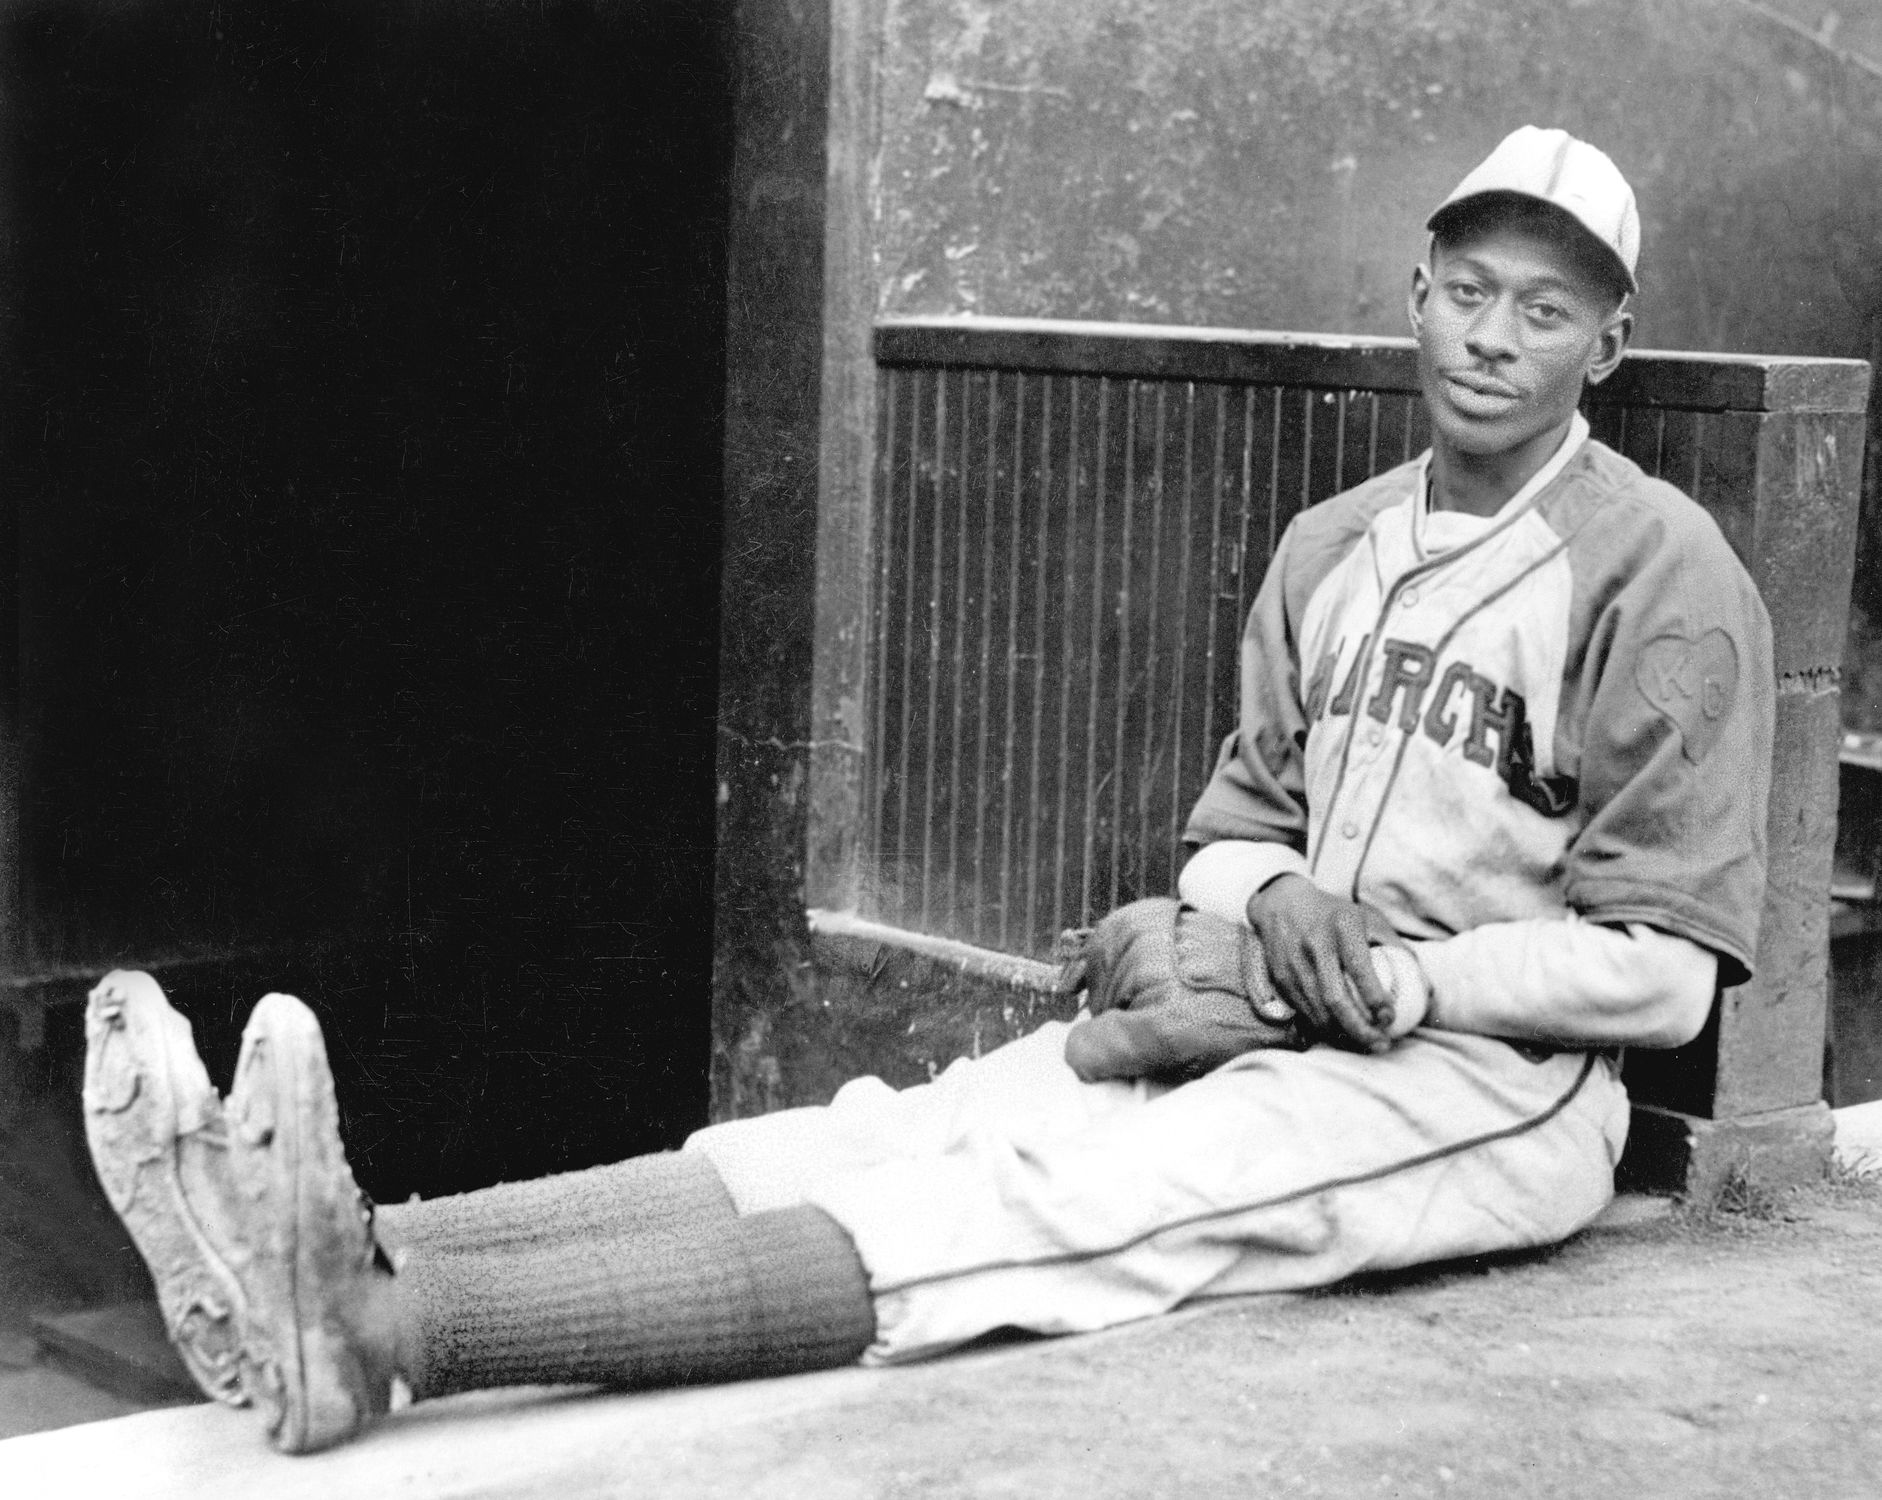 Satchel Paige pitches for A's at age 59   Baseball Hall of Fame